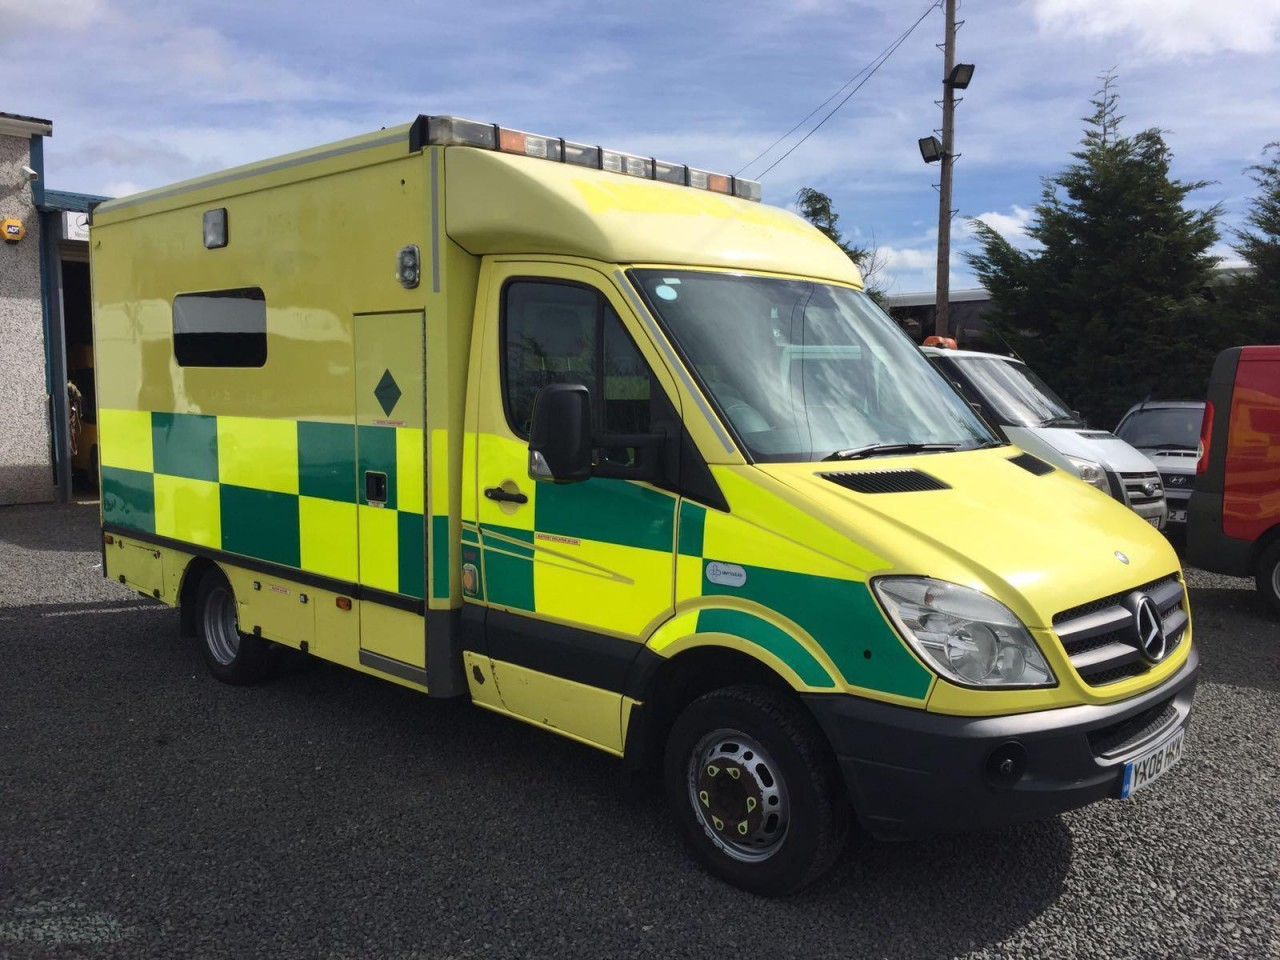 Mercedes benz sprinter ambulances rhd and lhd manual or automatic ready for service 2008 to 2014 models from 8 000 gbp exw